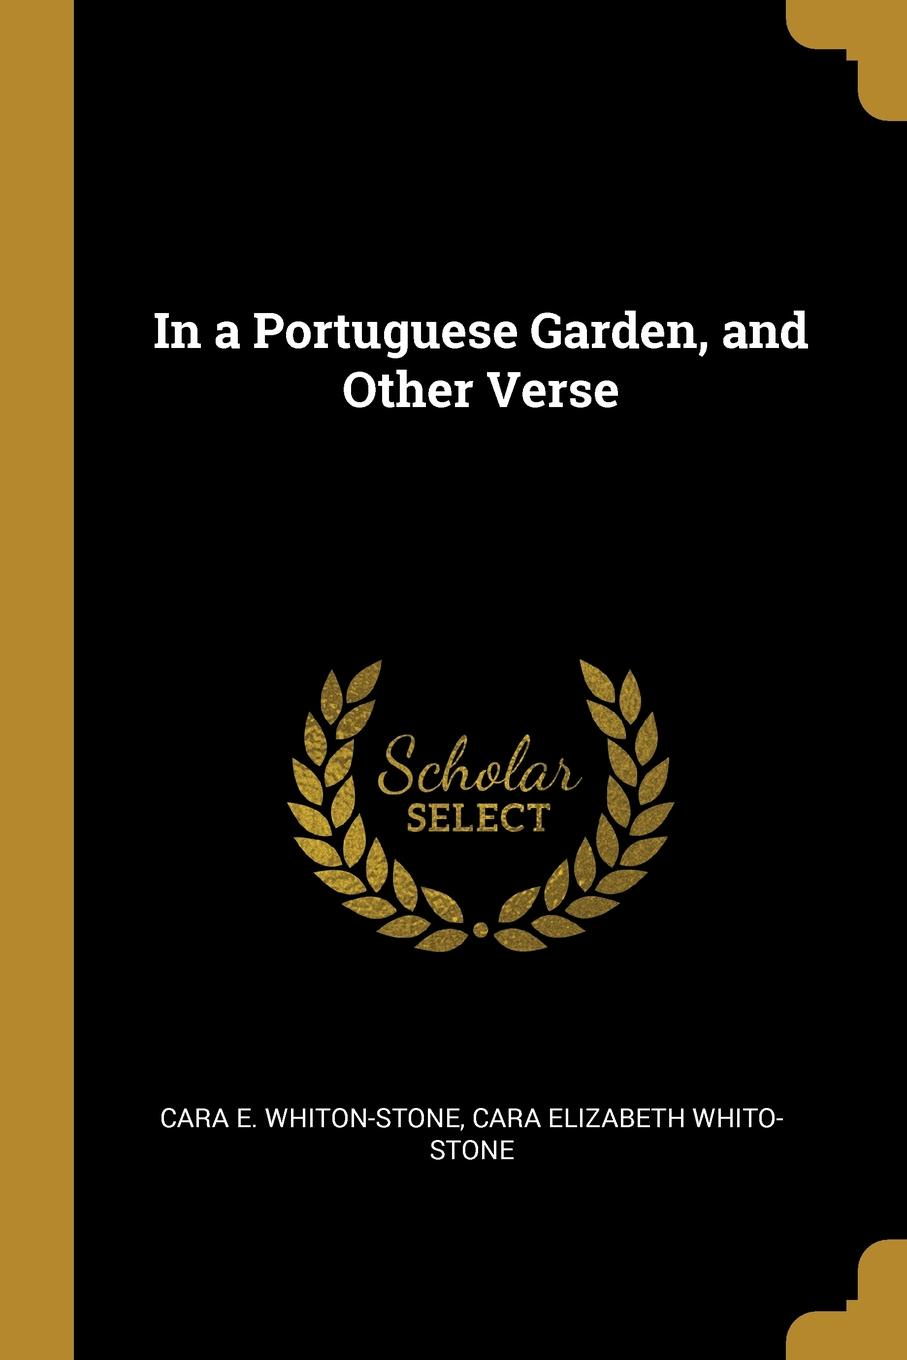 In a Portuguese Garden, and Other Verse